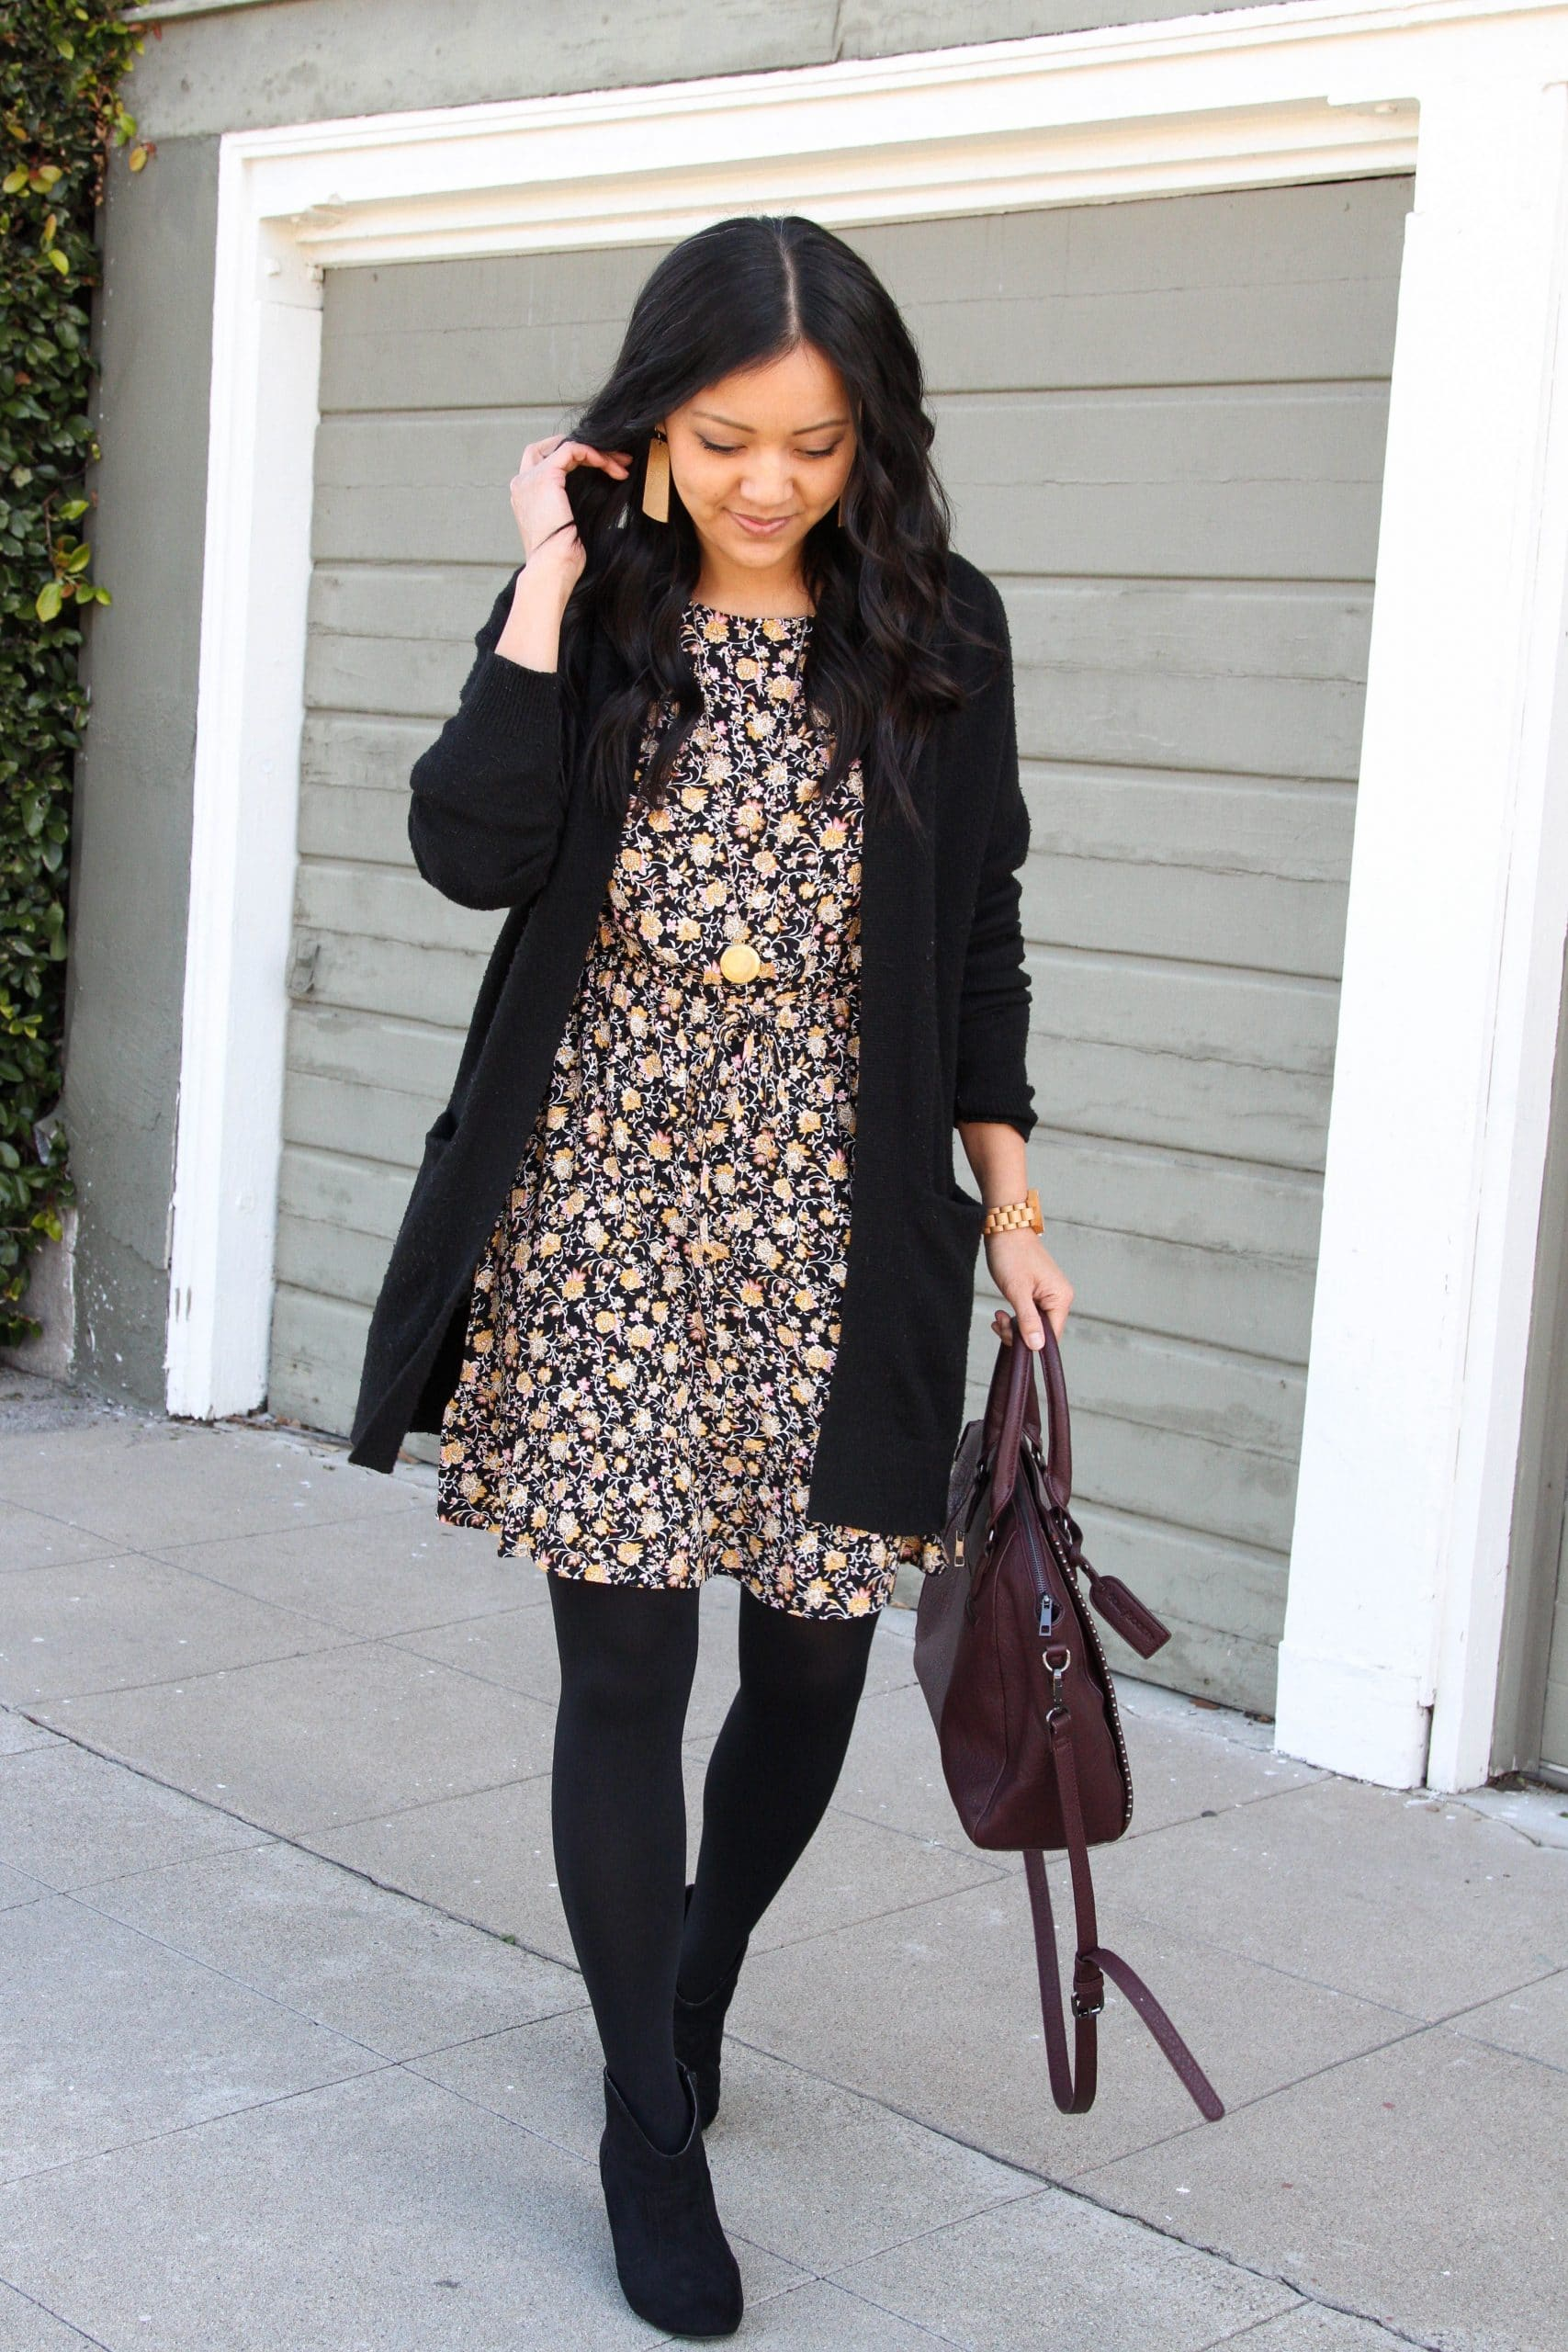 Dress With Tights Outfit: floral print dress + long black cardigan + black tights + black suede booties + maroon tote bag + tan leather earrings + long gold disc pendant